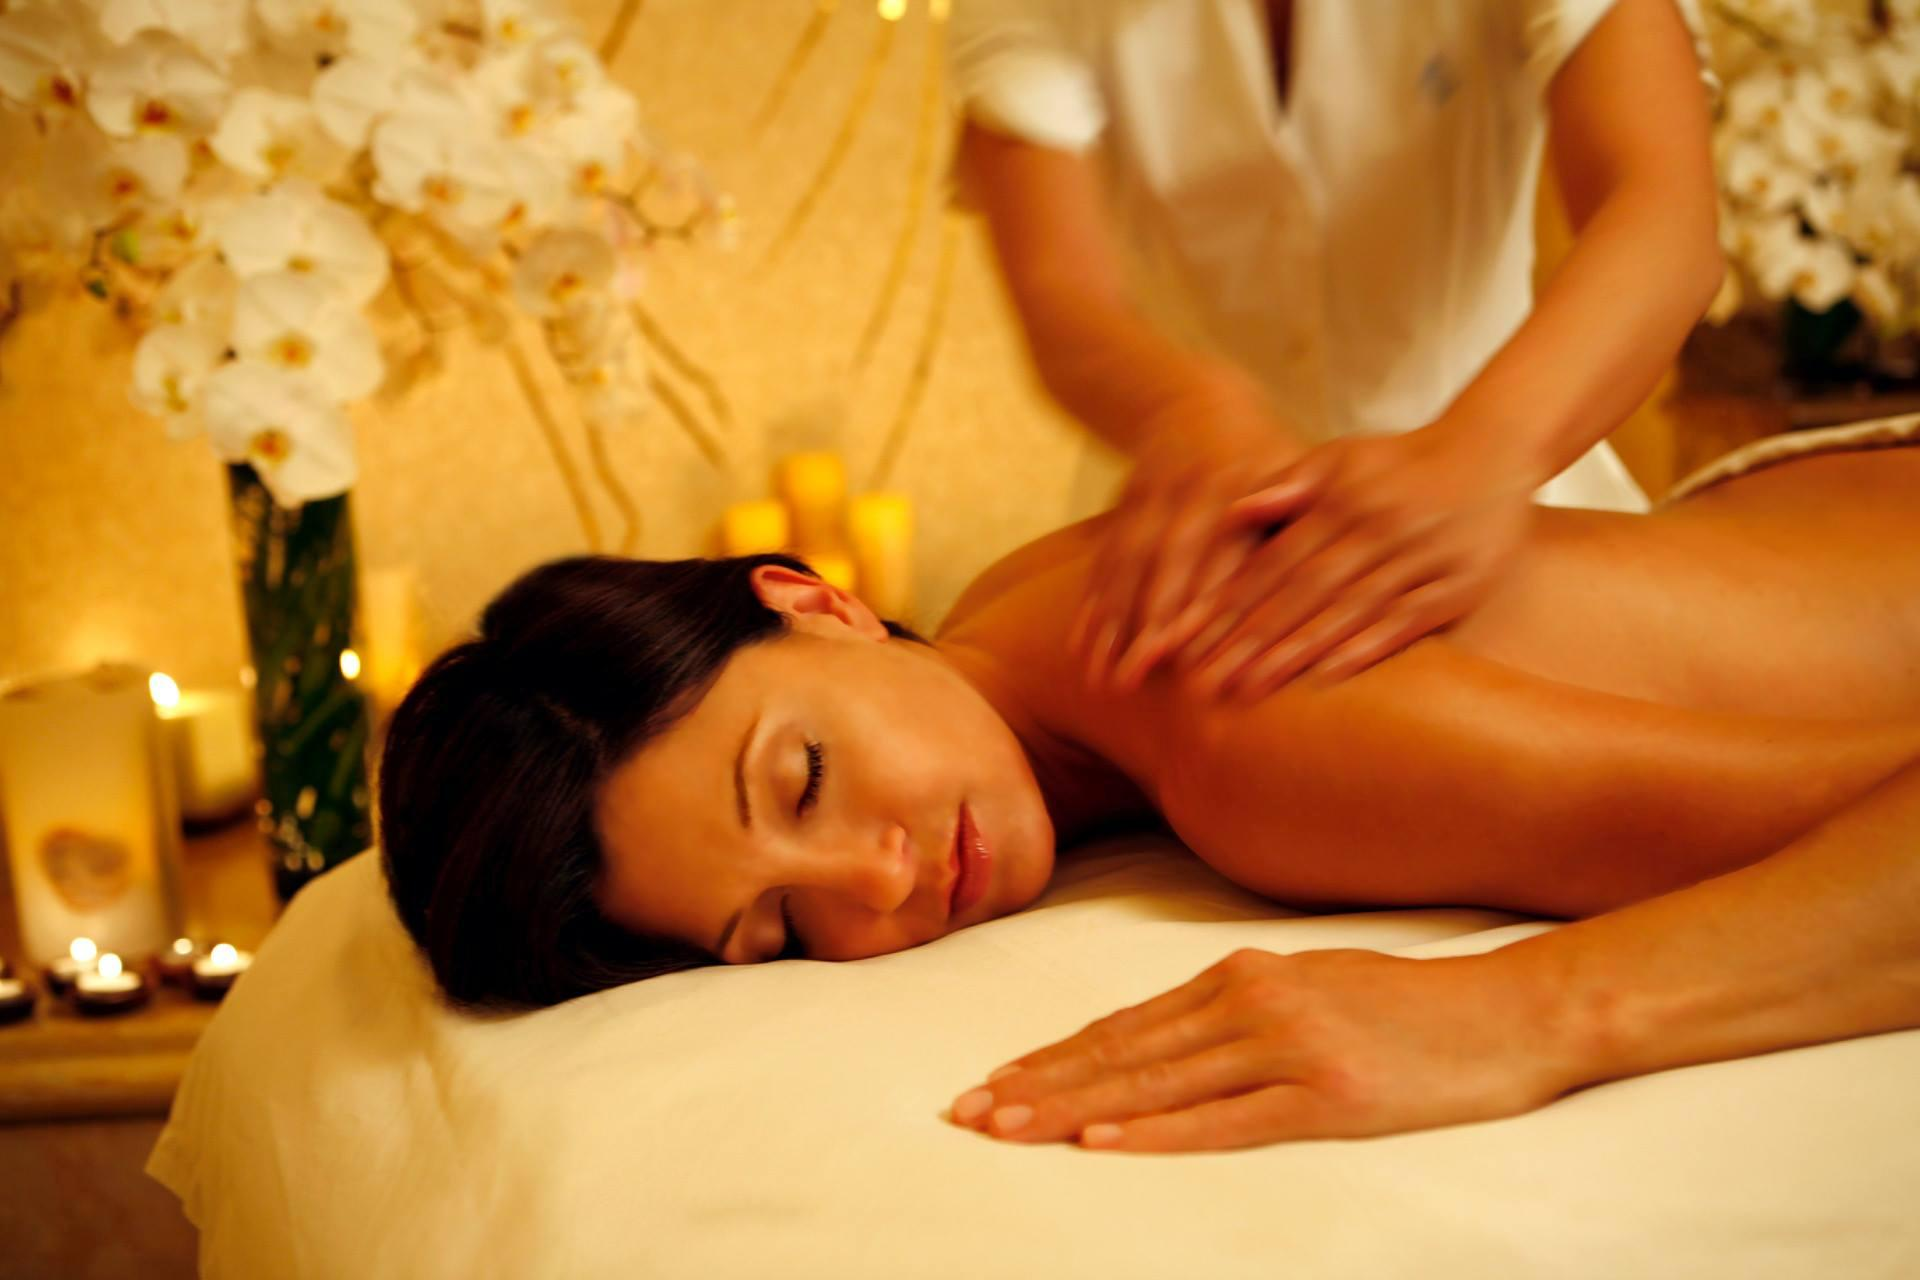 Hot Stone Massage in Weymouth, Braintree, Quincy, Abington, Rockland, and the South Shore